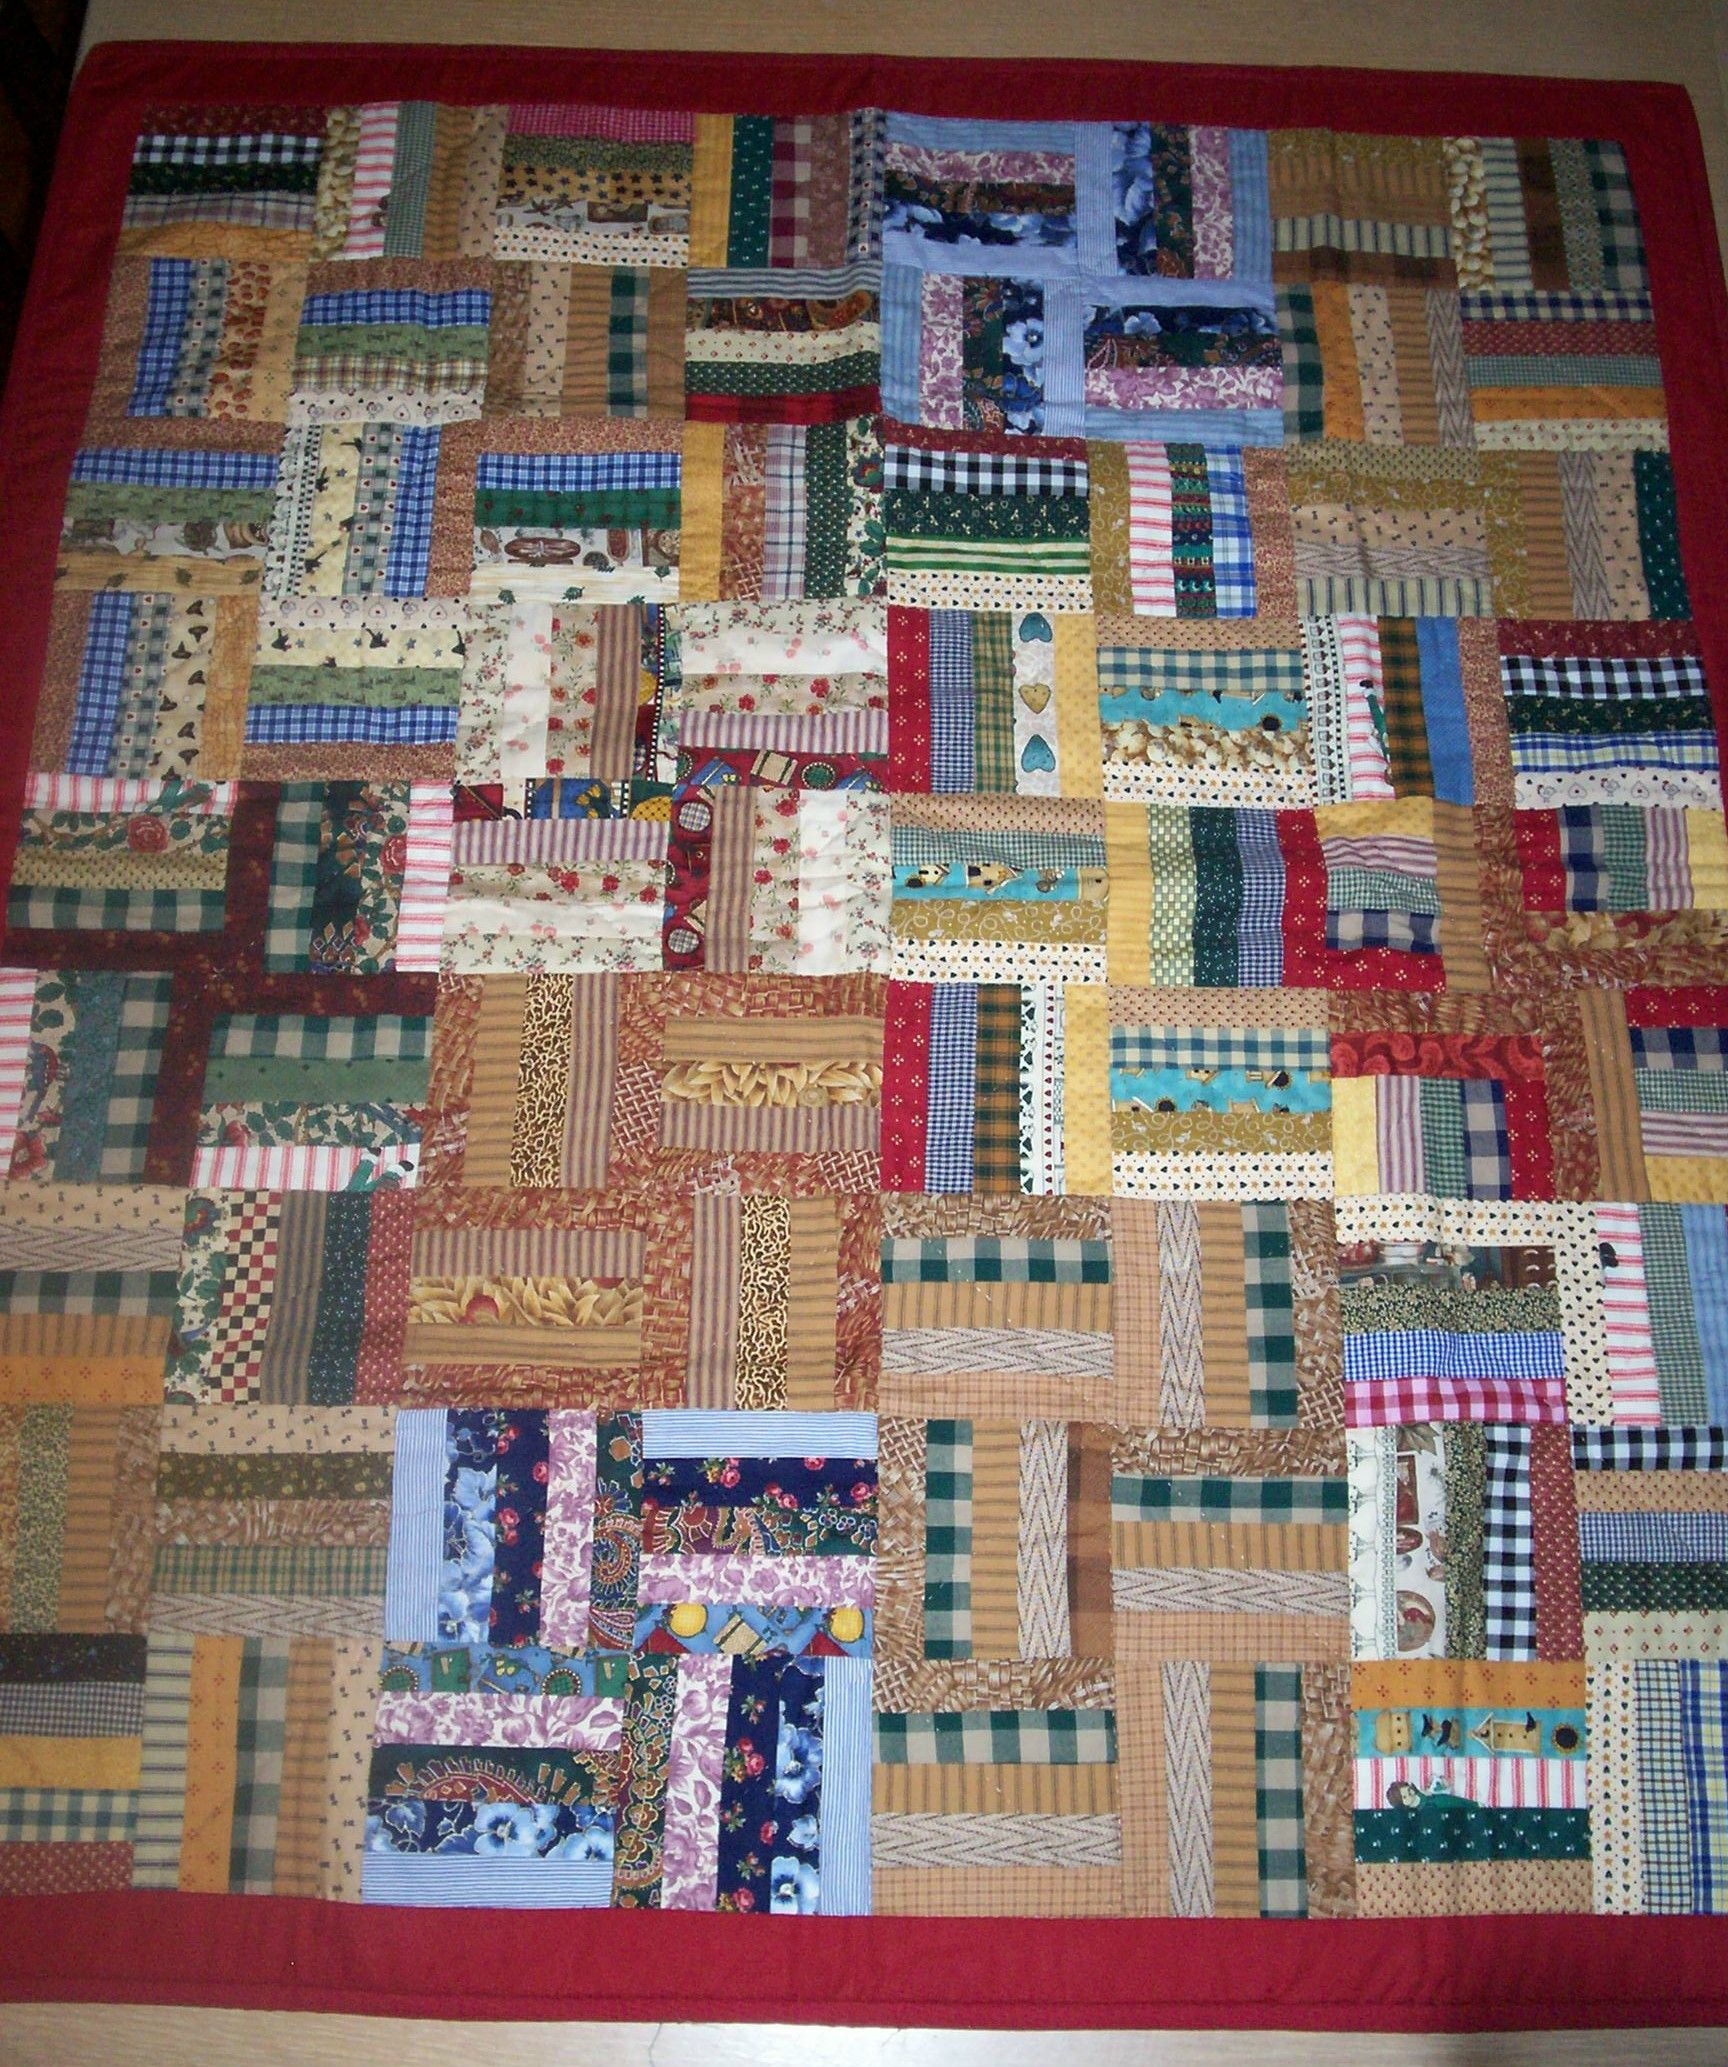 Rail fence quilt made from scrap fabrics.